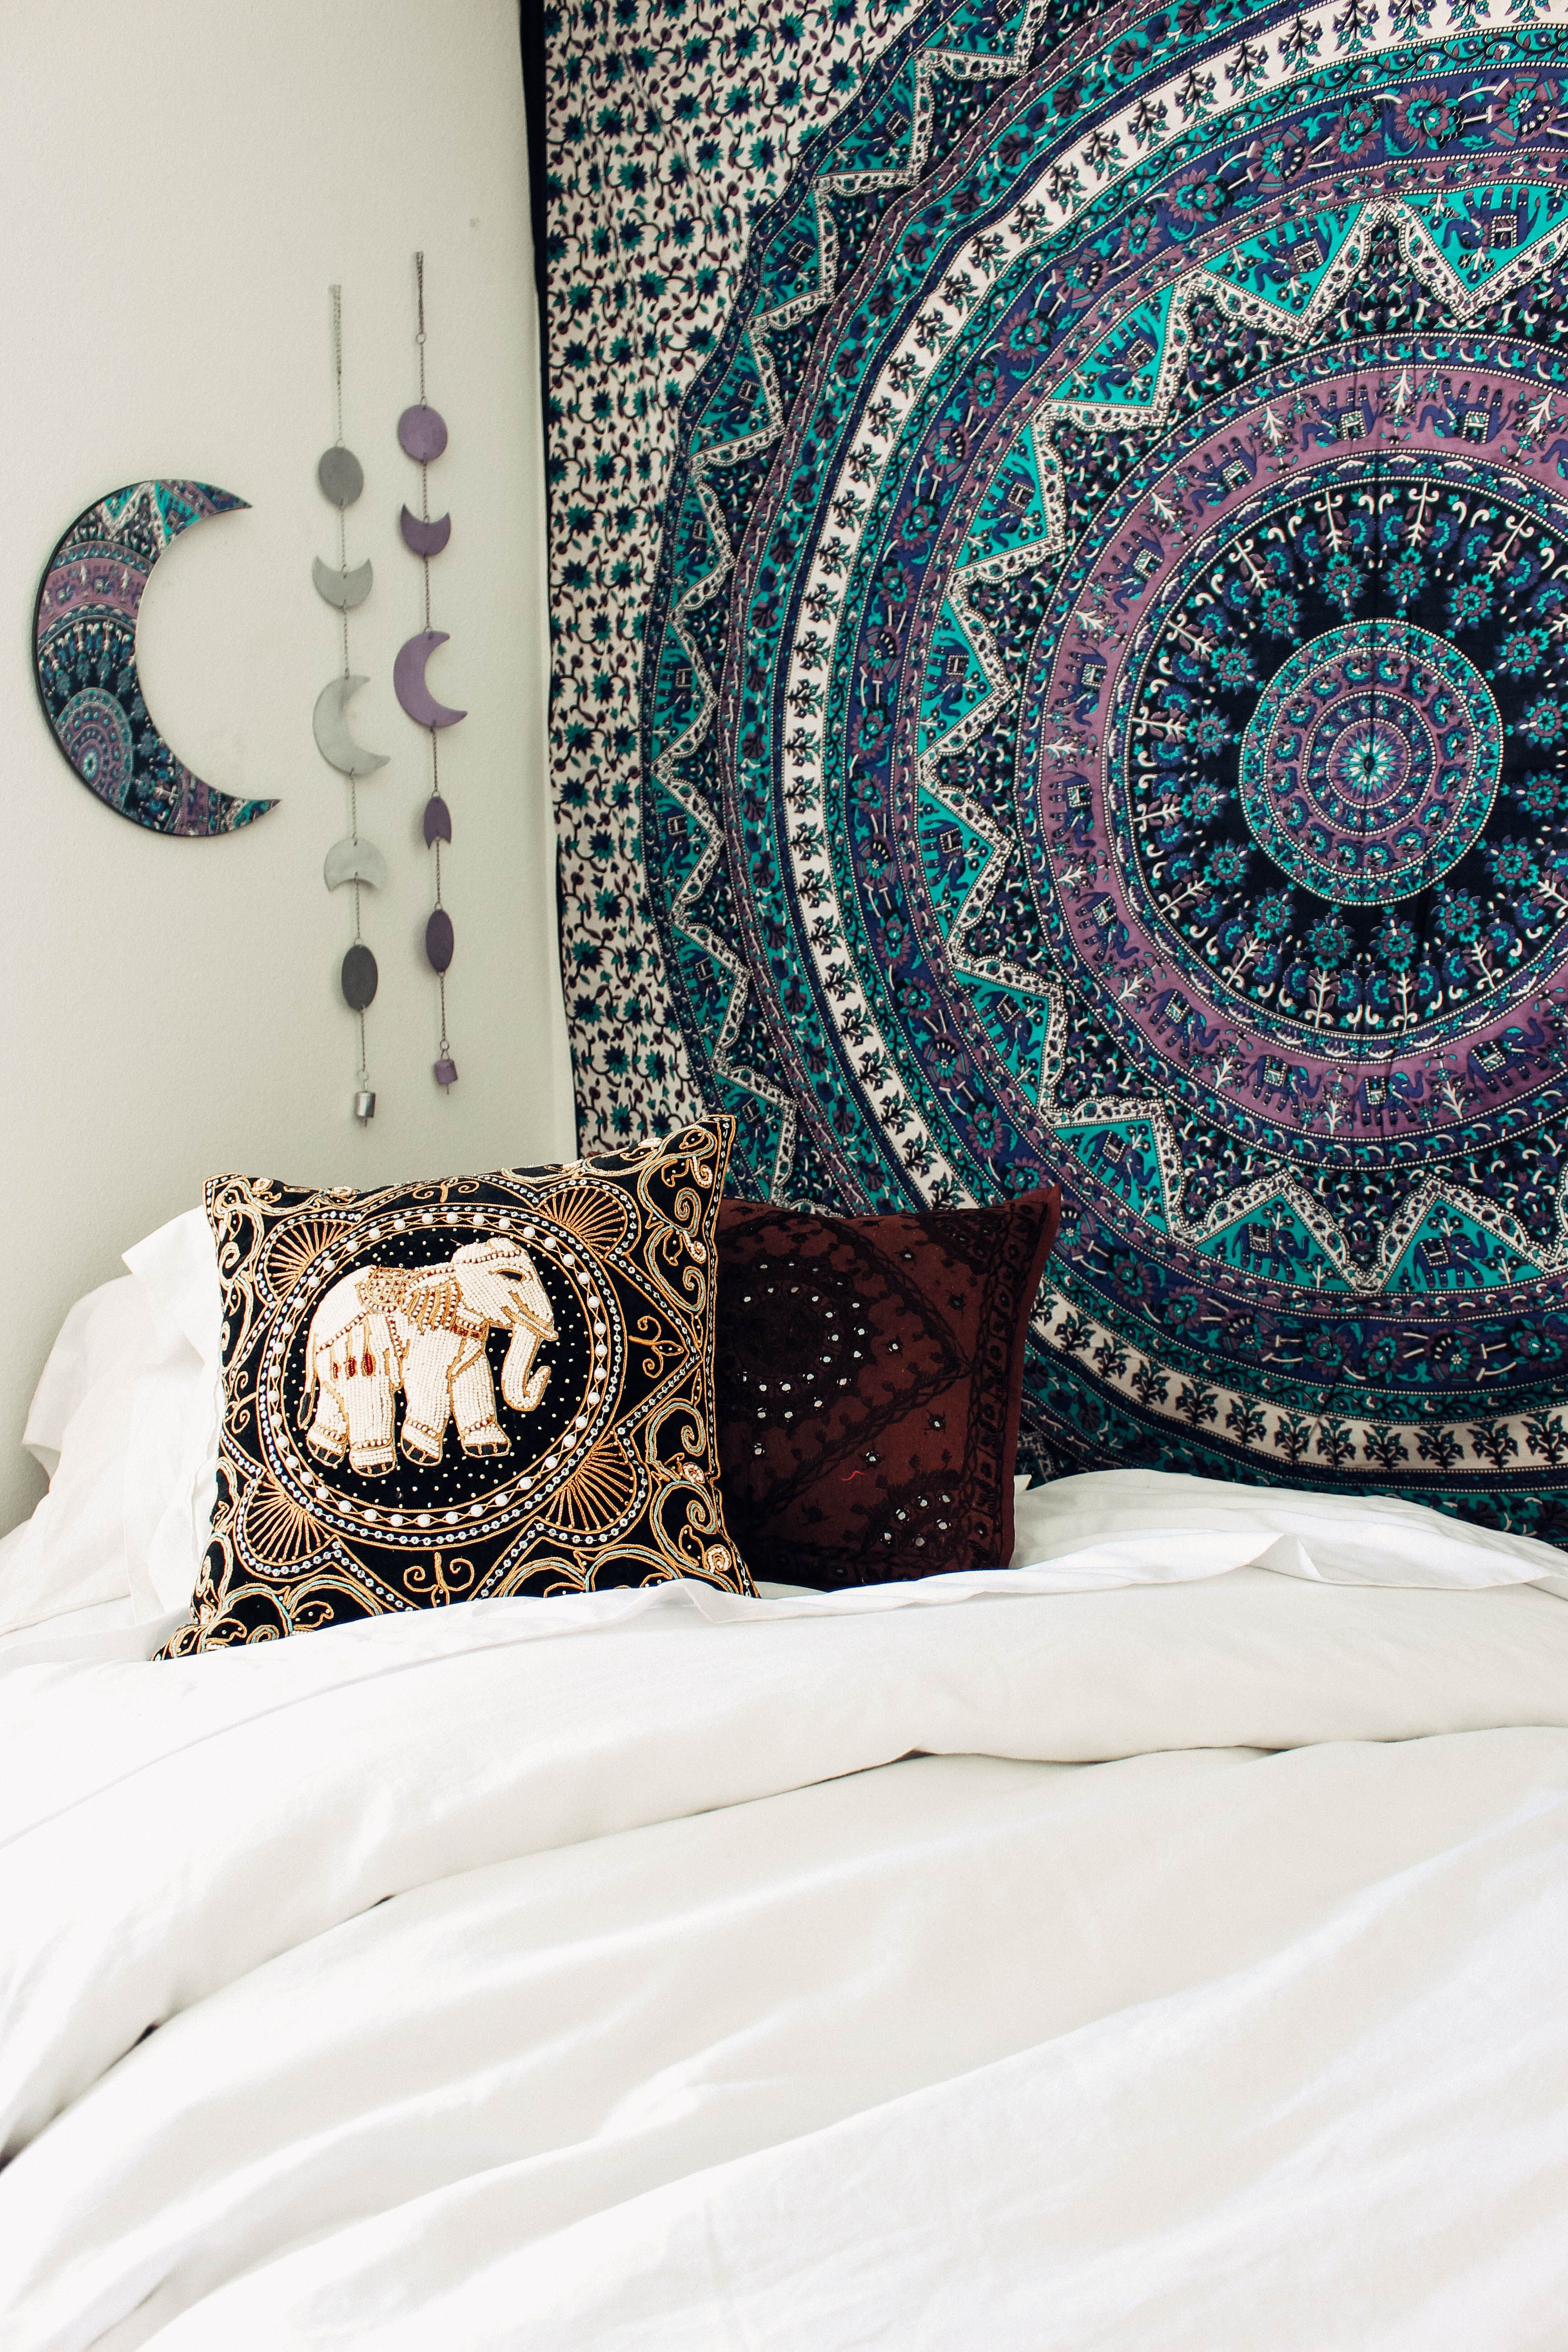 Voodoo Dreams Tapestry✨ Design by @kaitlynjohnsondesign ☽ ✩ Product by Lady Scorpio | Bohemian Boho Bungalow Bedroom || Save 25% off all orders with code PINTERESTXO at checkout | Shop Now LadyScorpio101.com